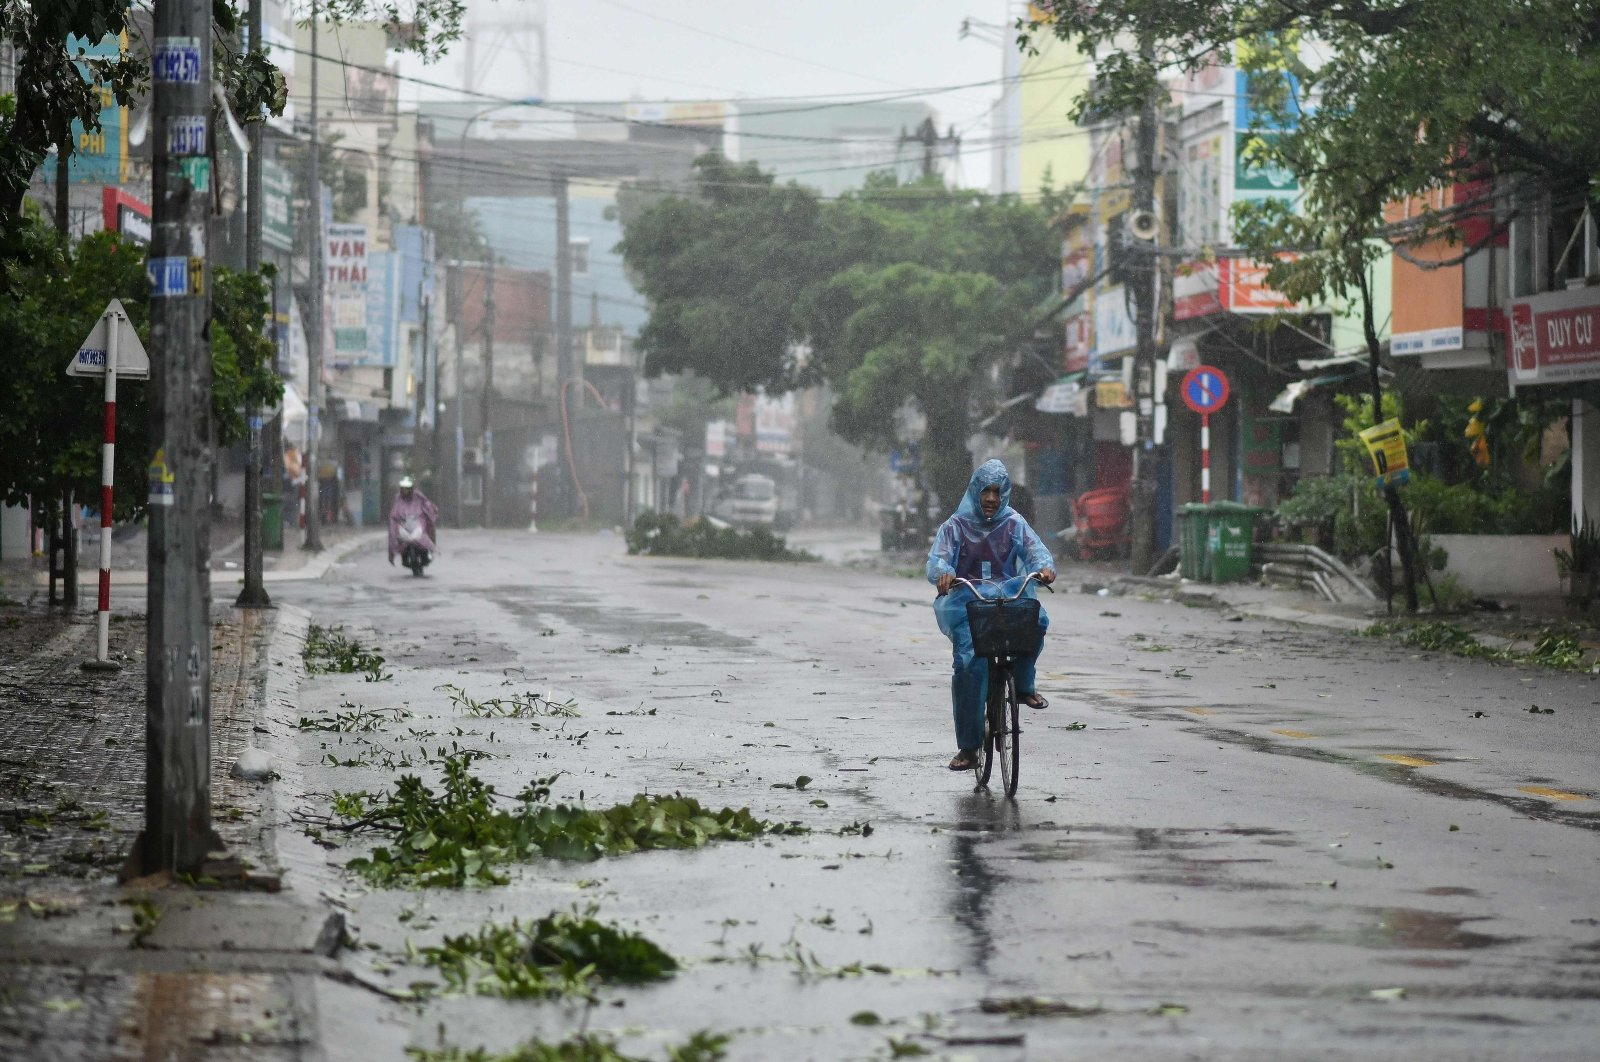 A man rides along a deserted road amid strong winds in central Vietnam's Quang Ngai province as Typhoon Molave makes landfall, on Oct. 28, 2020. (AFP Photo)